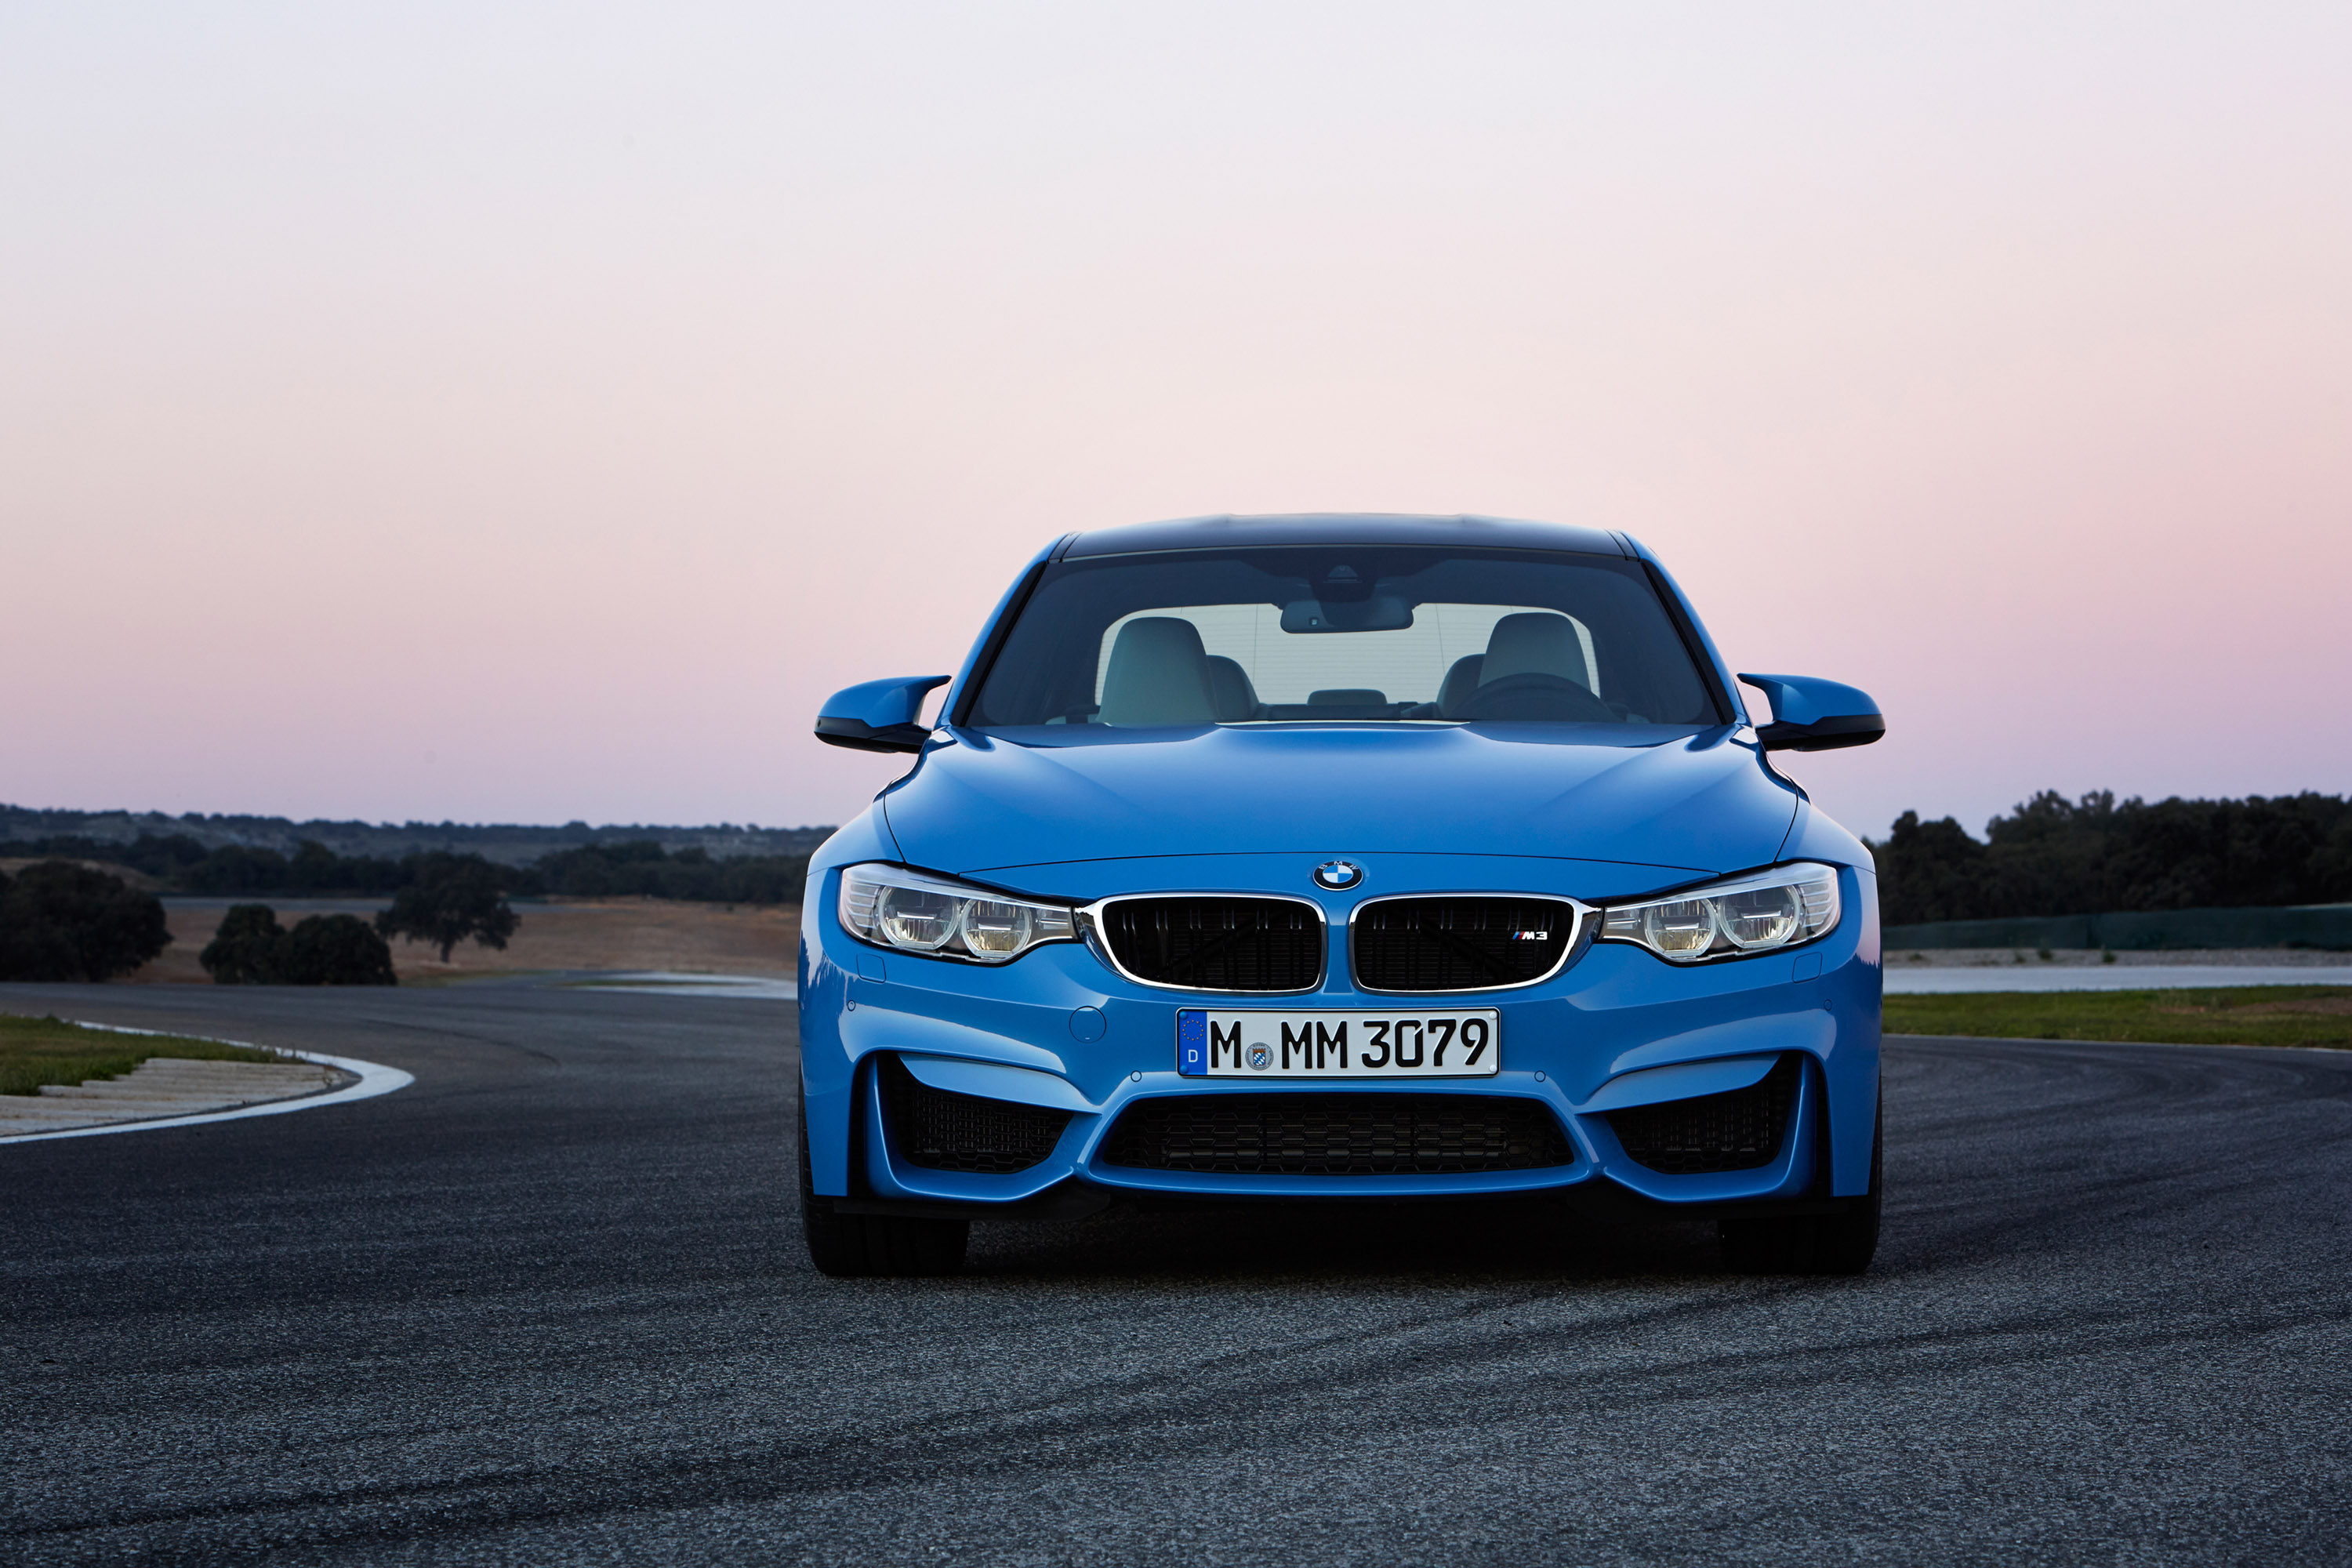 2014 Bmw M3 F80 And M4 F82 Us Price 62 000 And 64 200